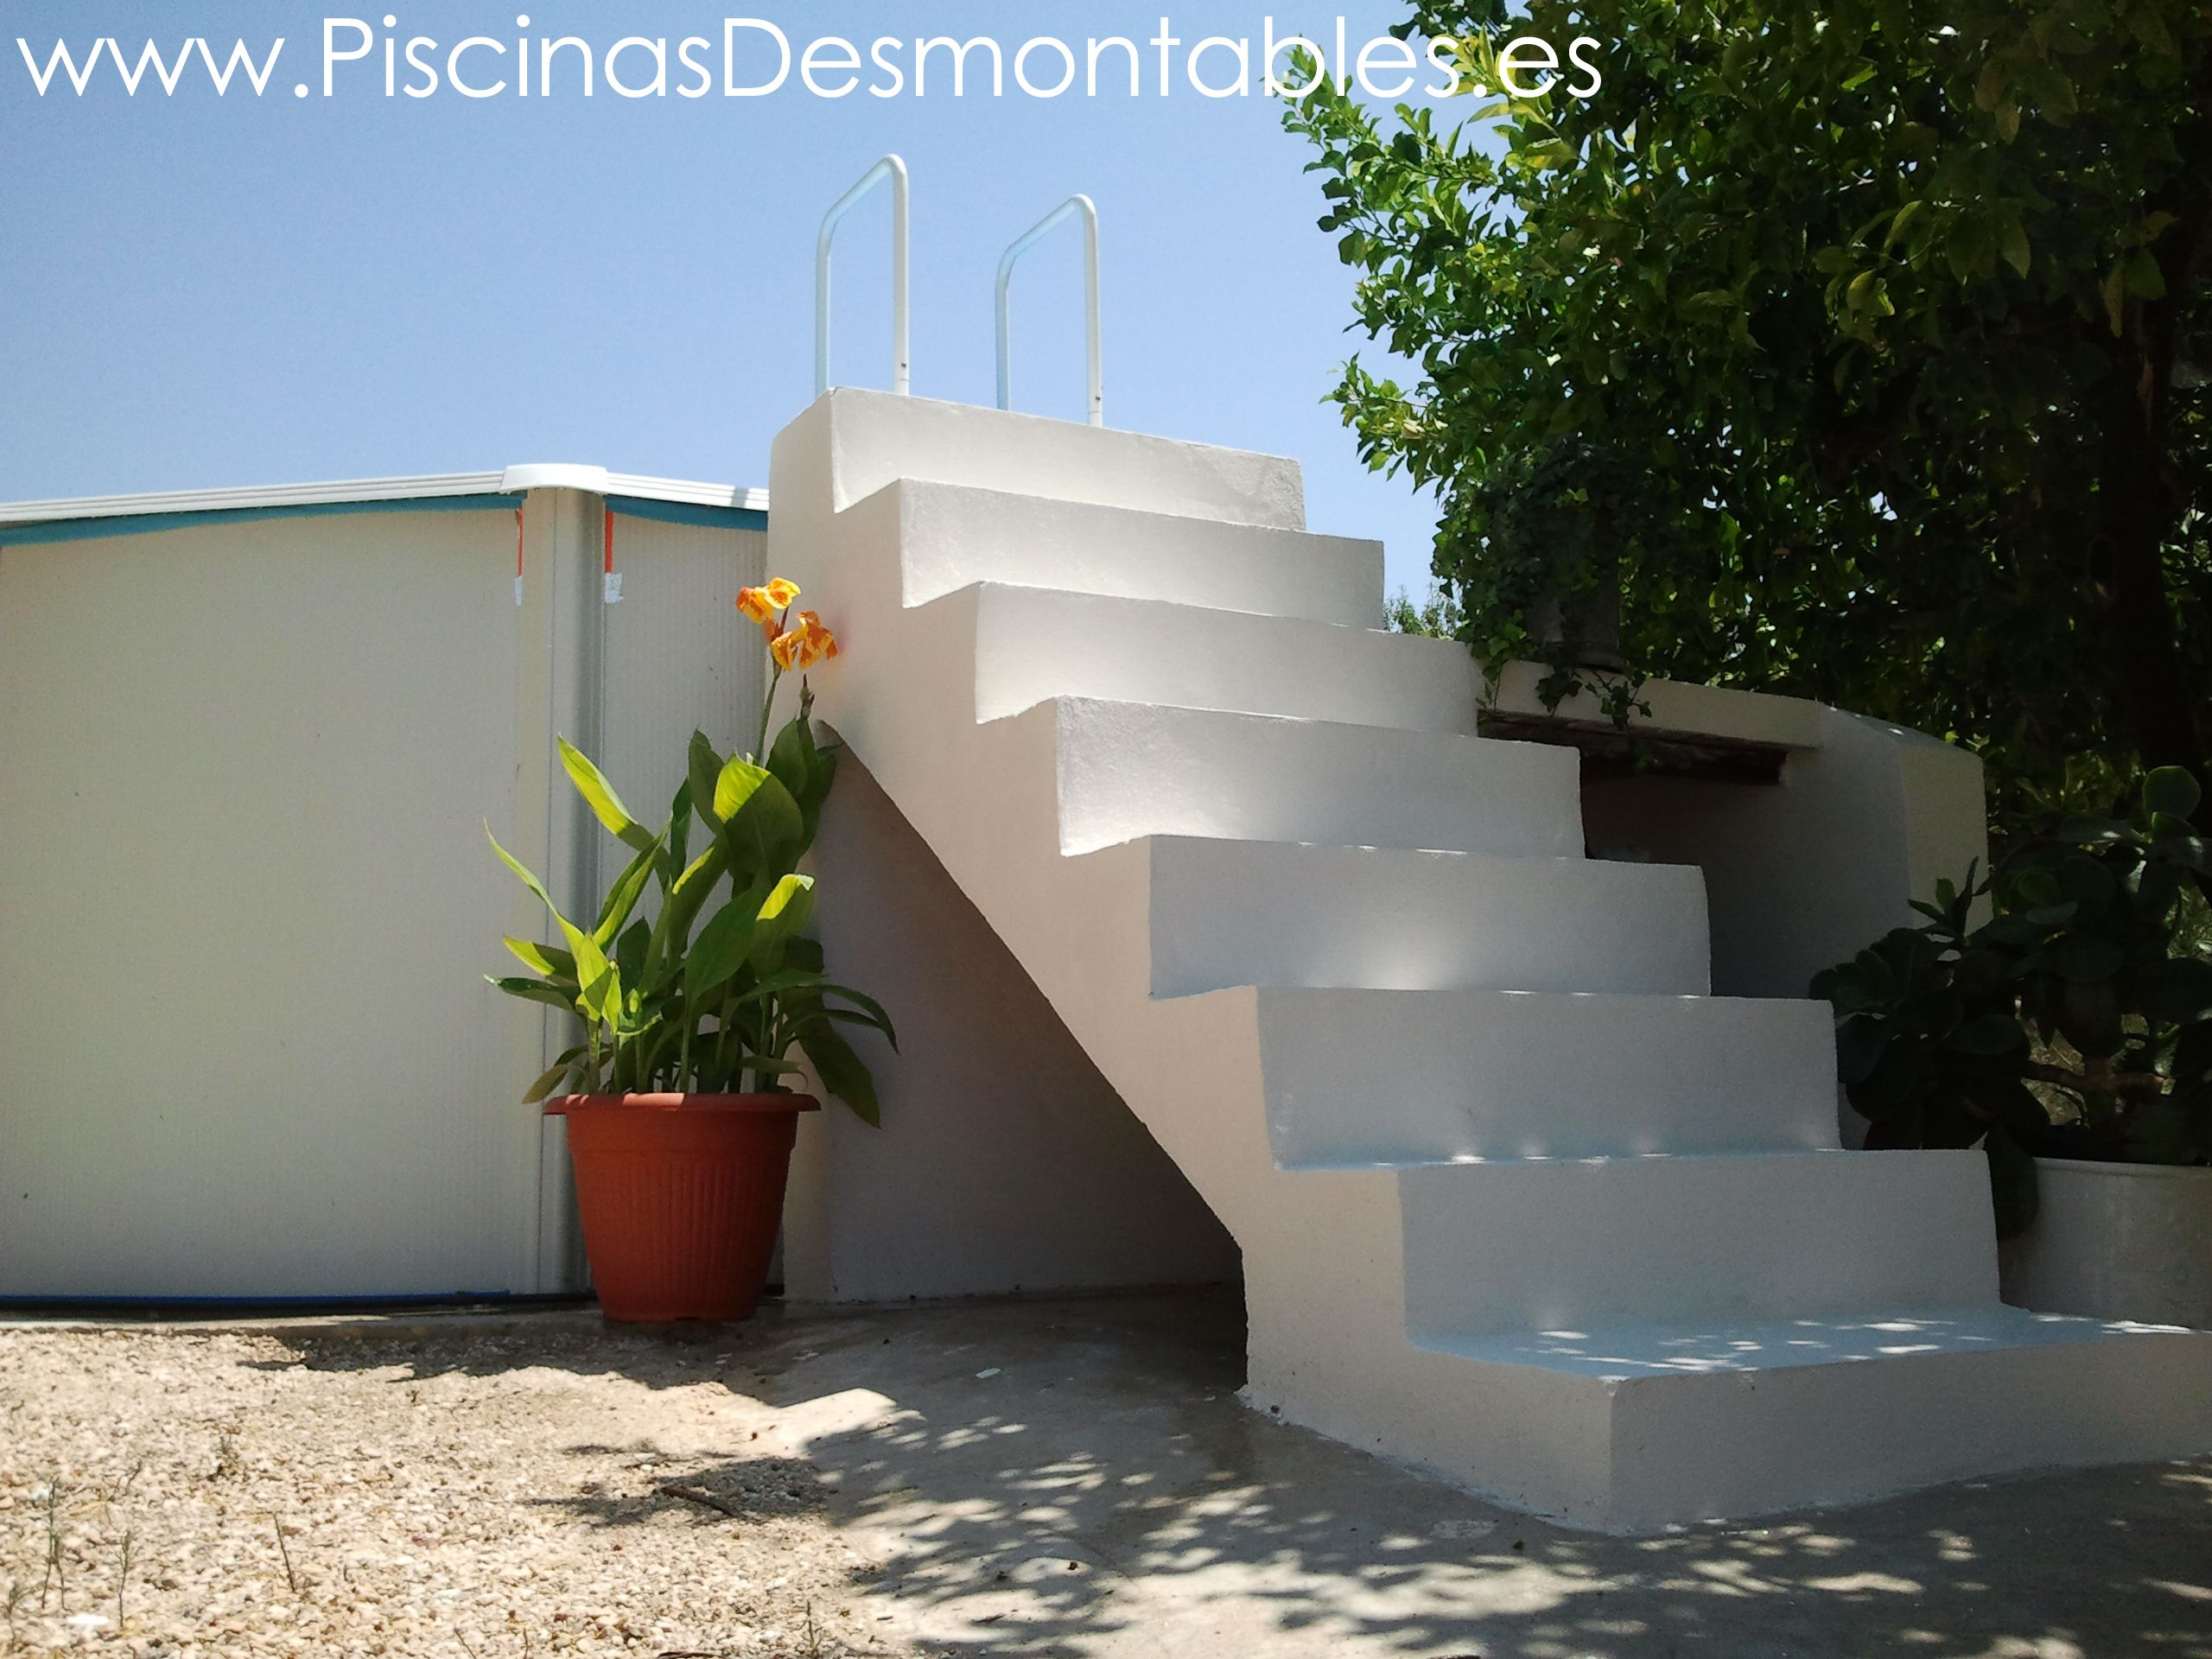 Escalera de cemento blanco para piscinas desmontables for Escalones piscina